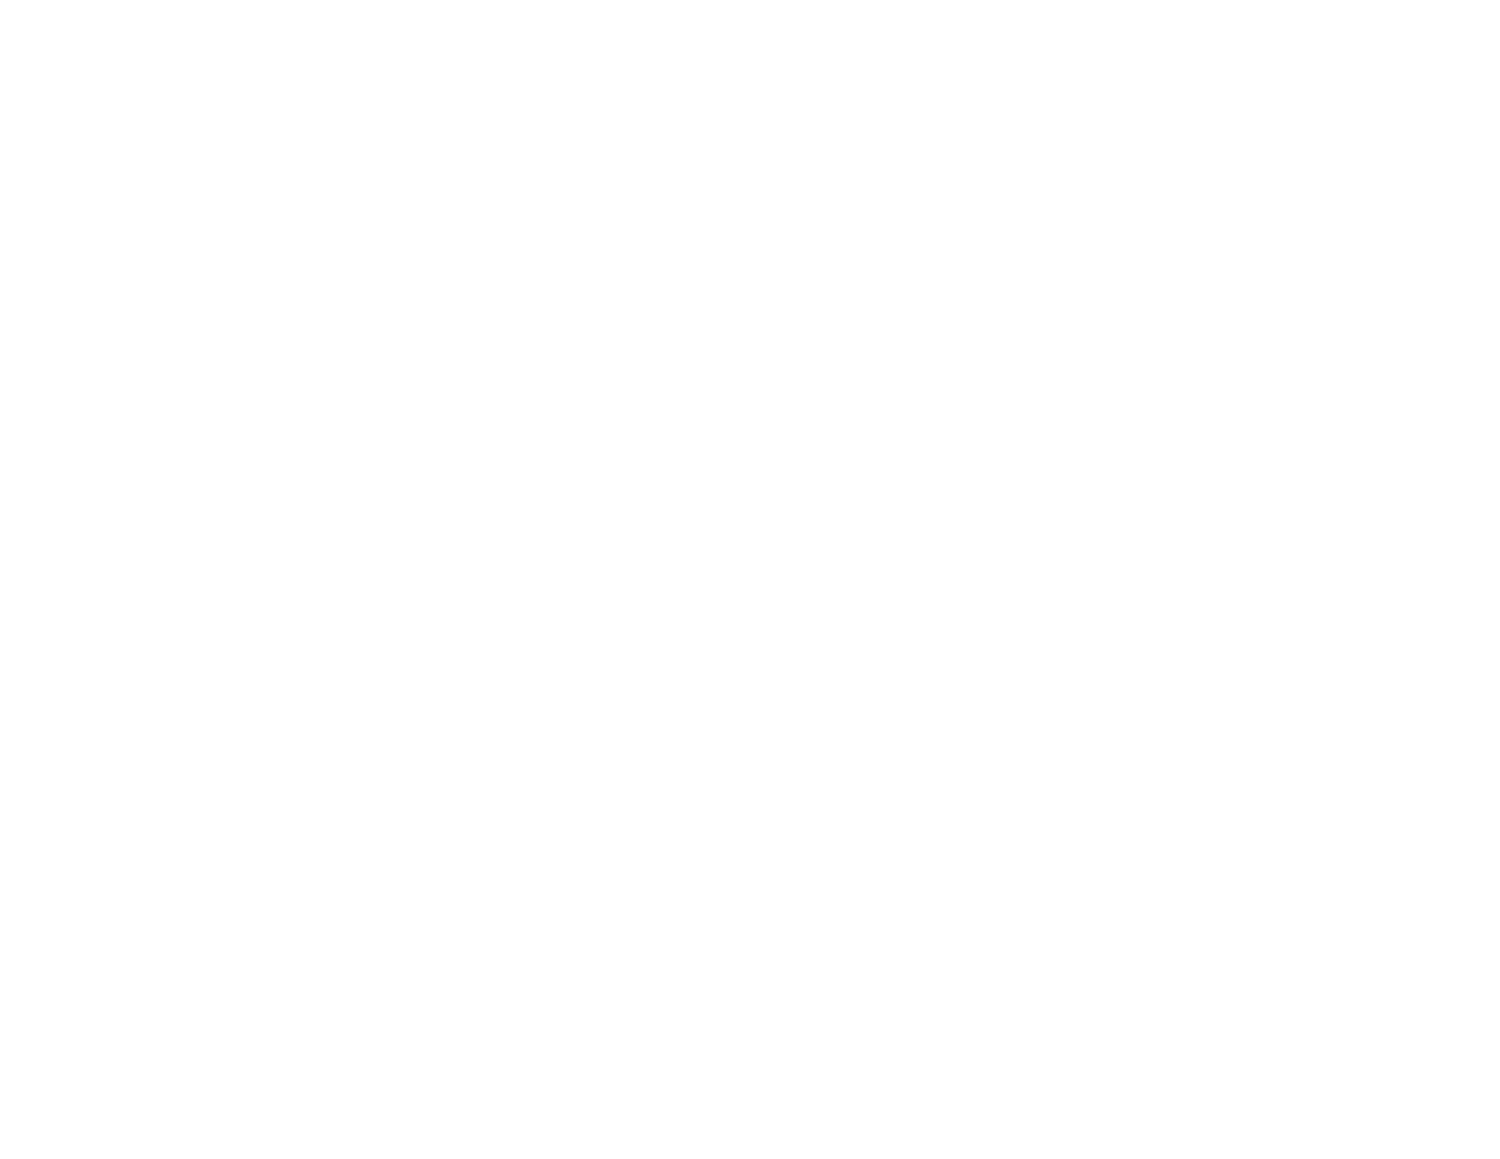 Rockwood Athlete